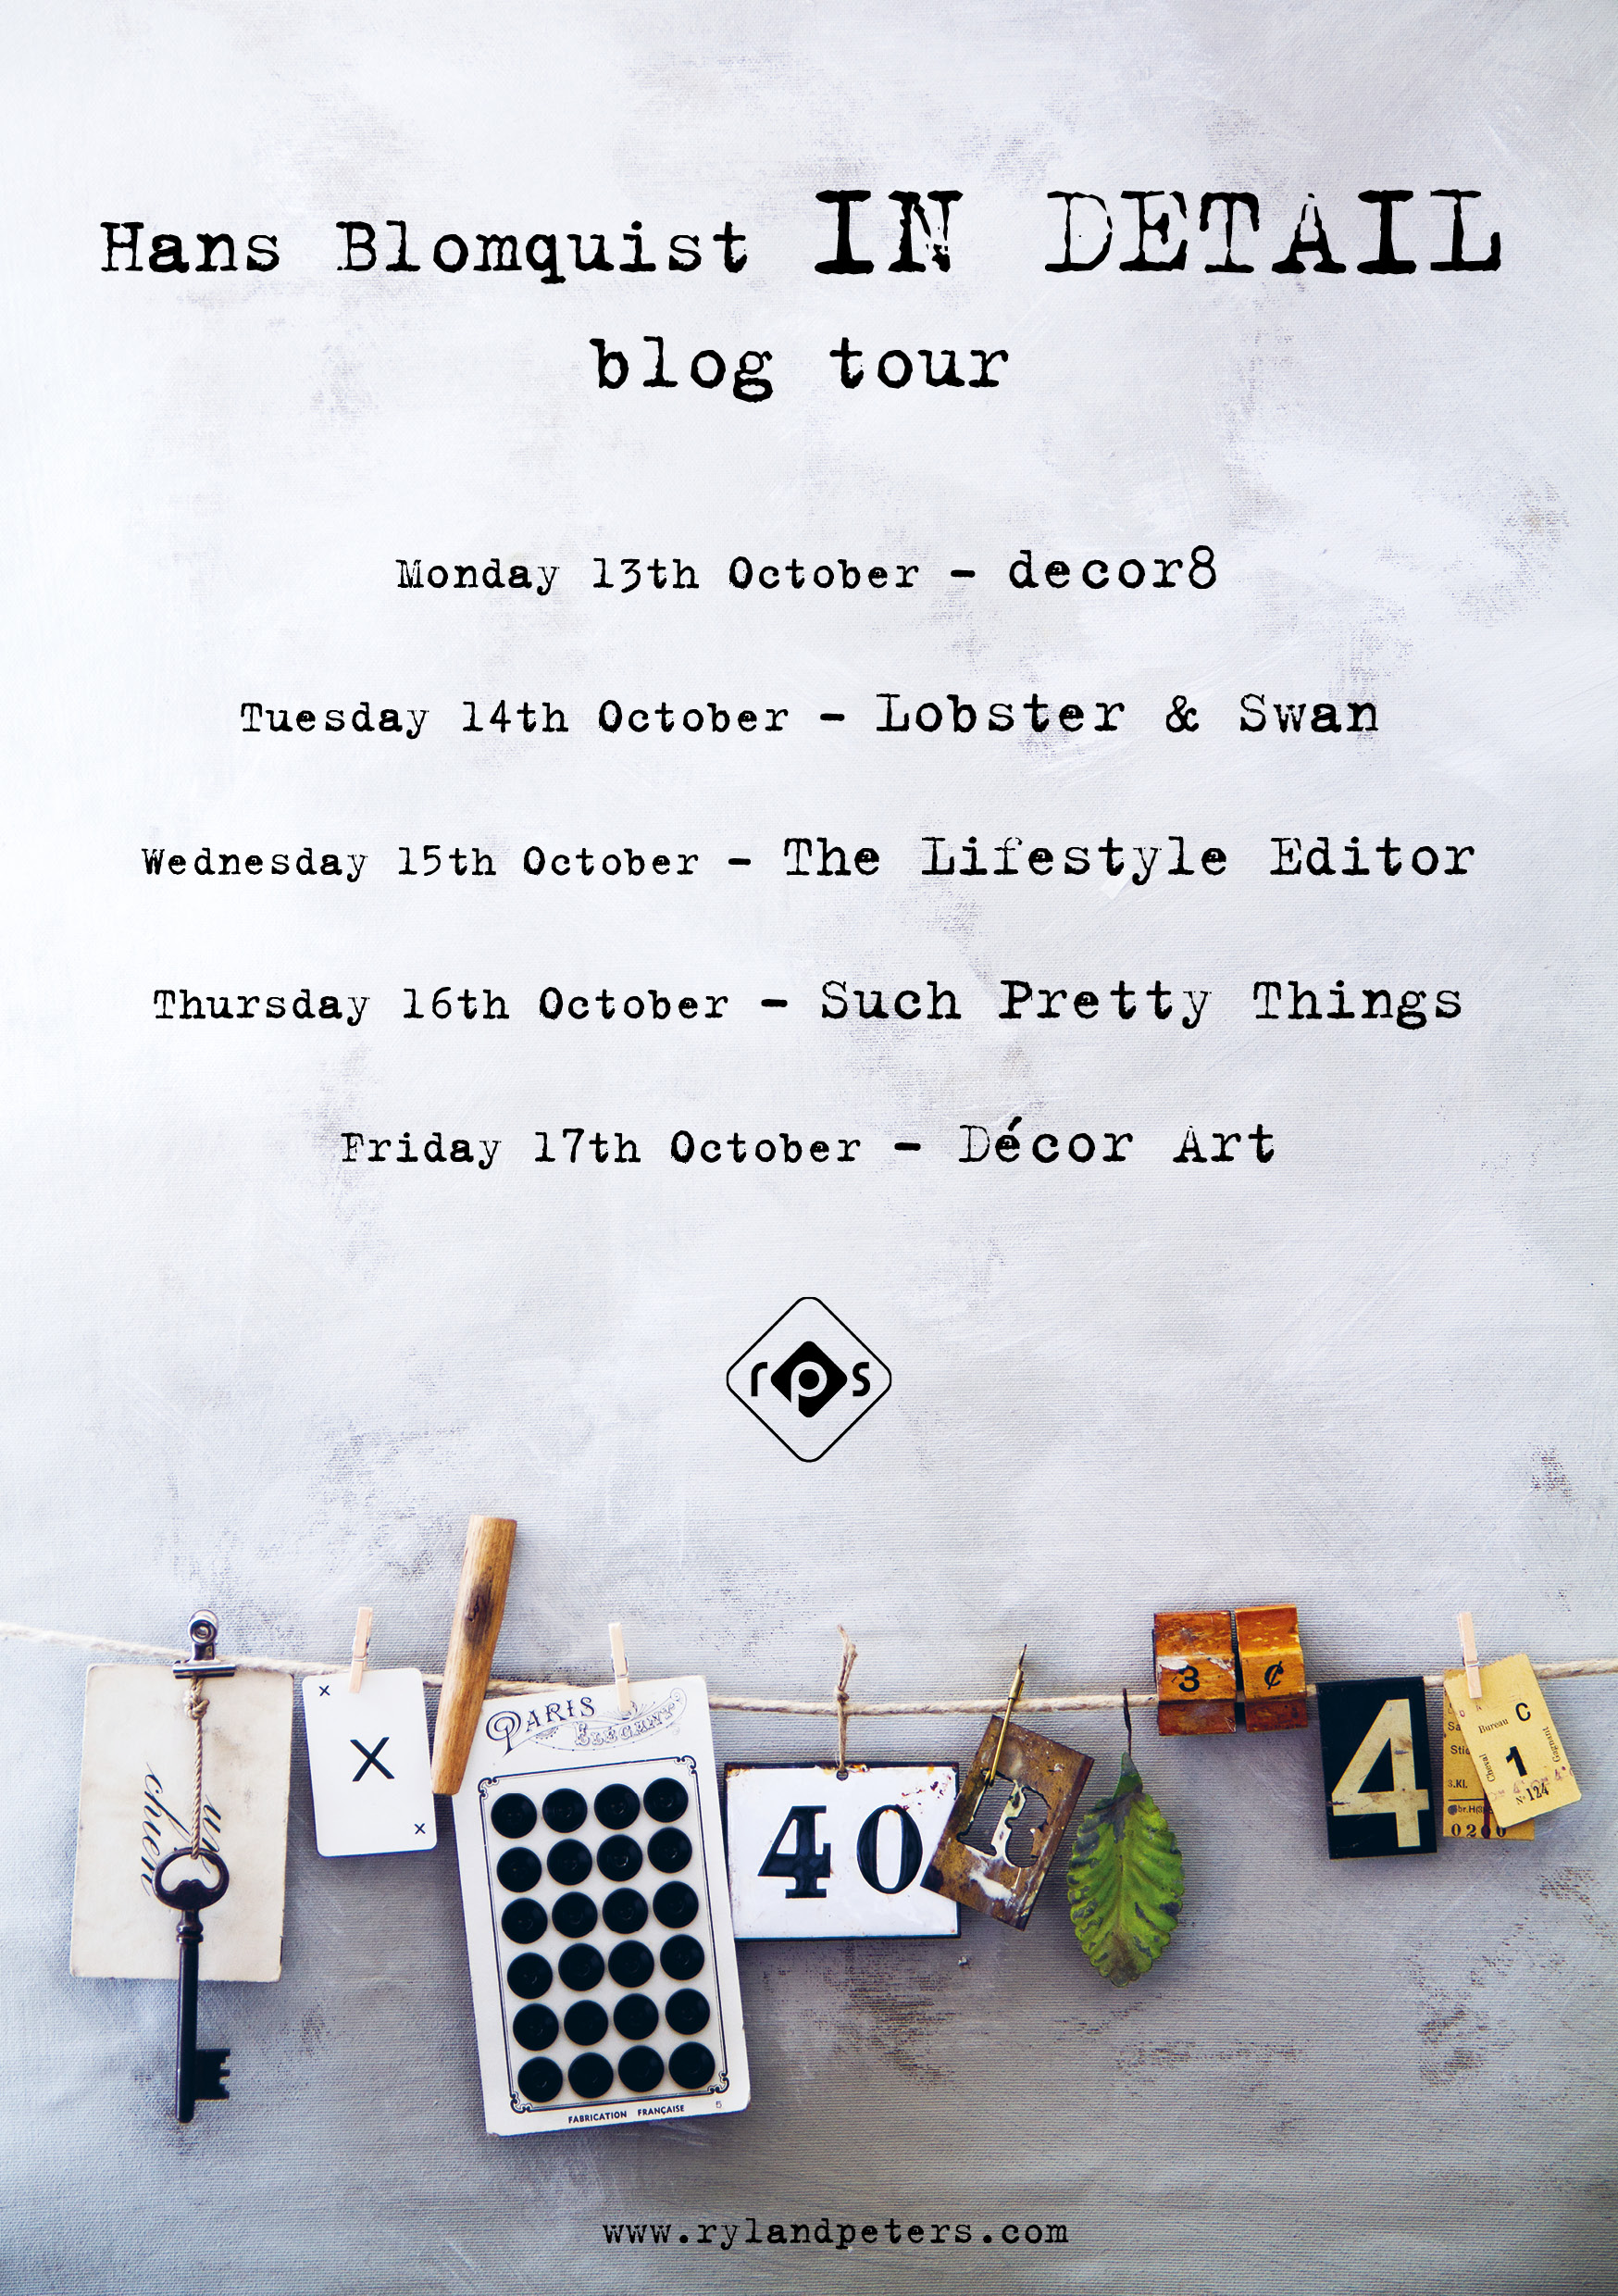 In Detail blog tour poster